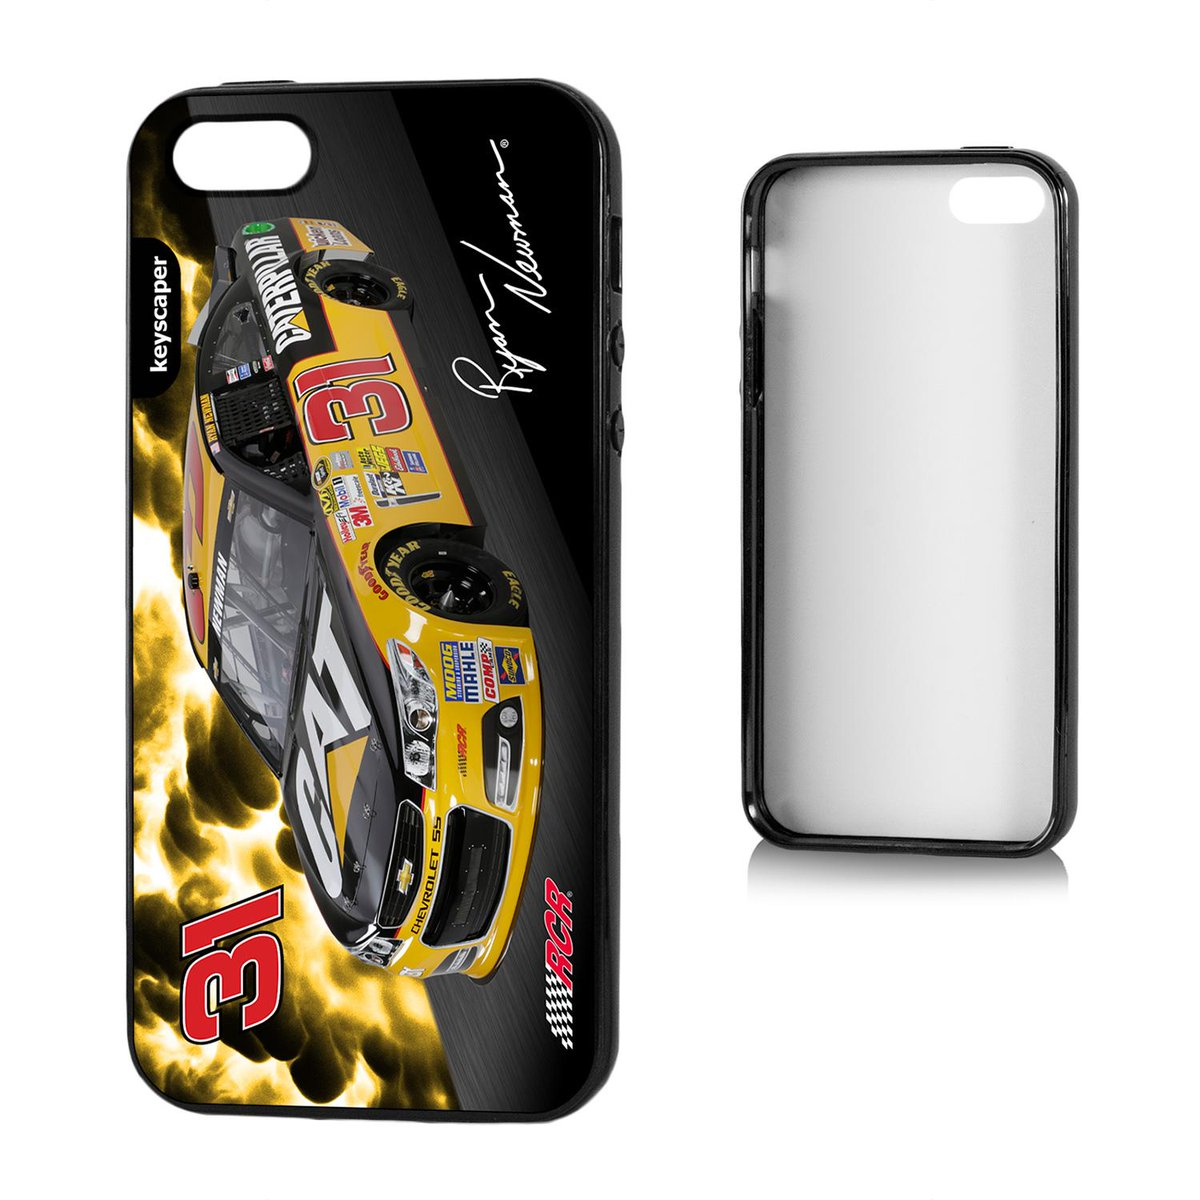 ~  > @keyscaper <  friend of @TheRacinNation   Will give this iphone5 case to the 30th   person to RT this Tweet!  http://t.co/6TBWO93HSm  ~